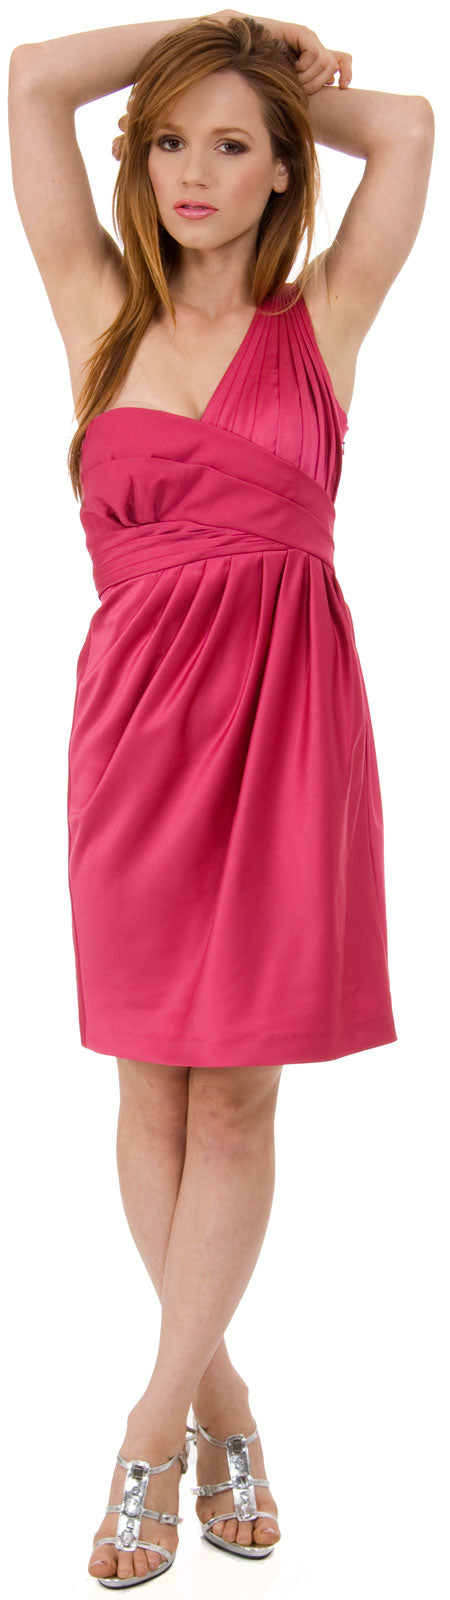 Image of Bridal Satin One Shoulder Cocktail Dress in Fuchsia